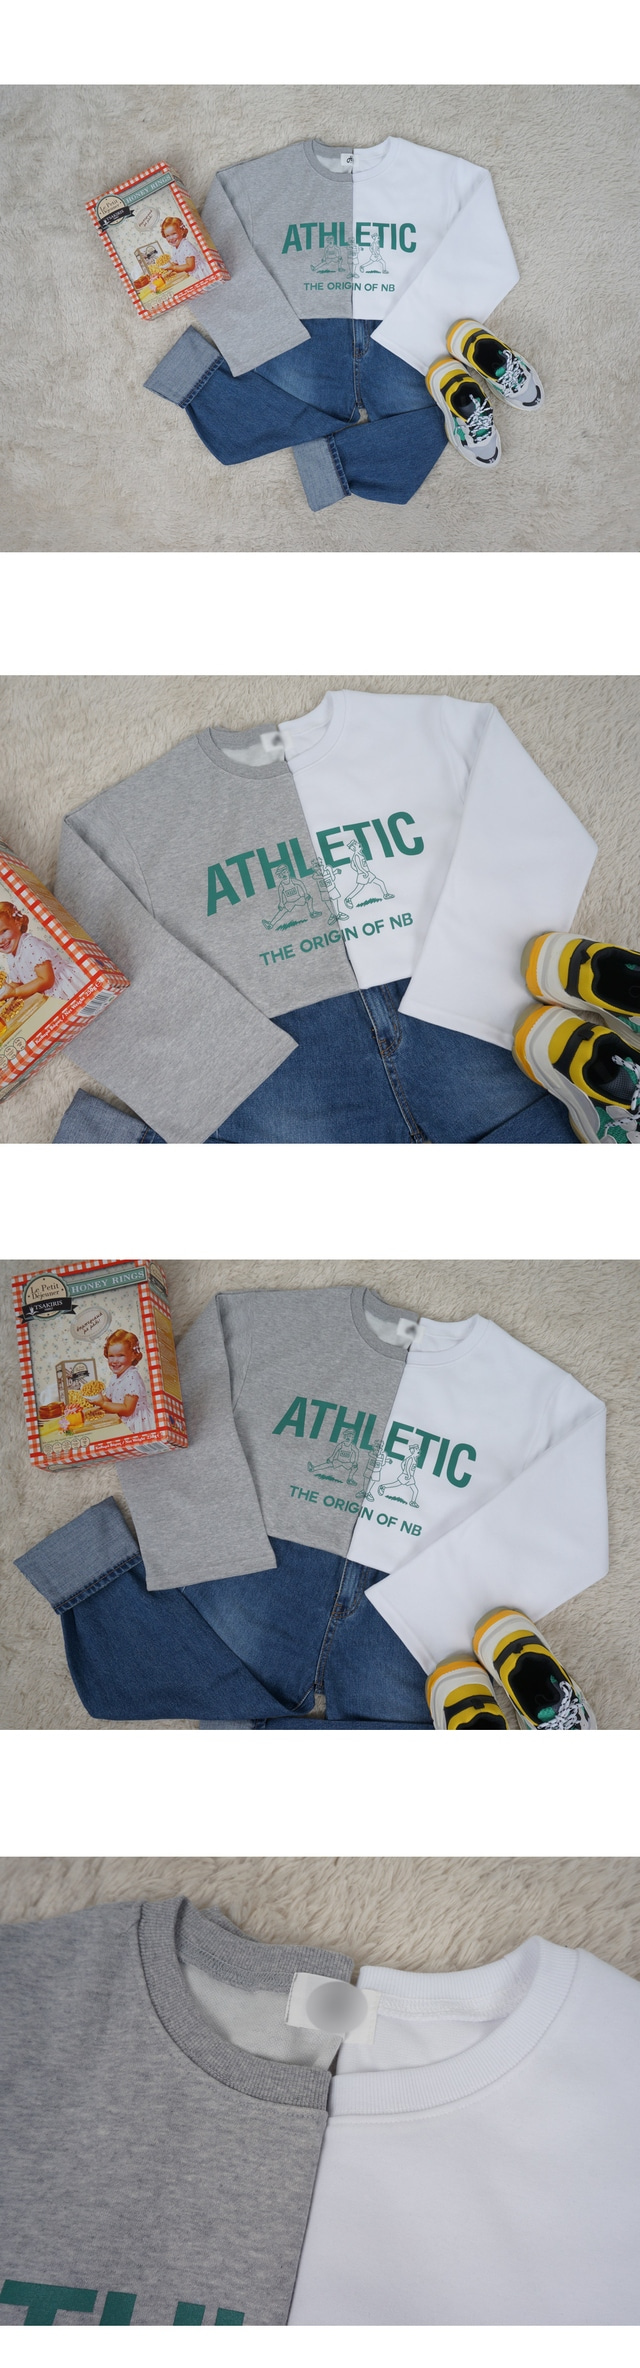 Athletics preparation long-sleeved T